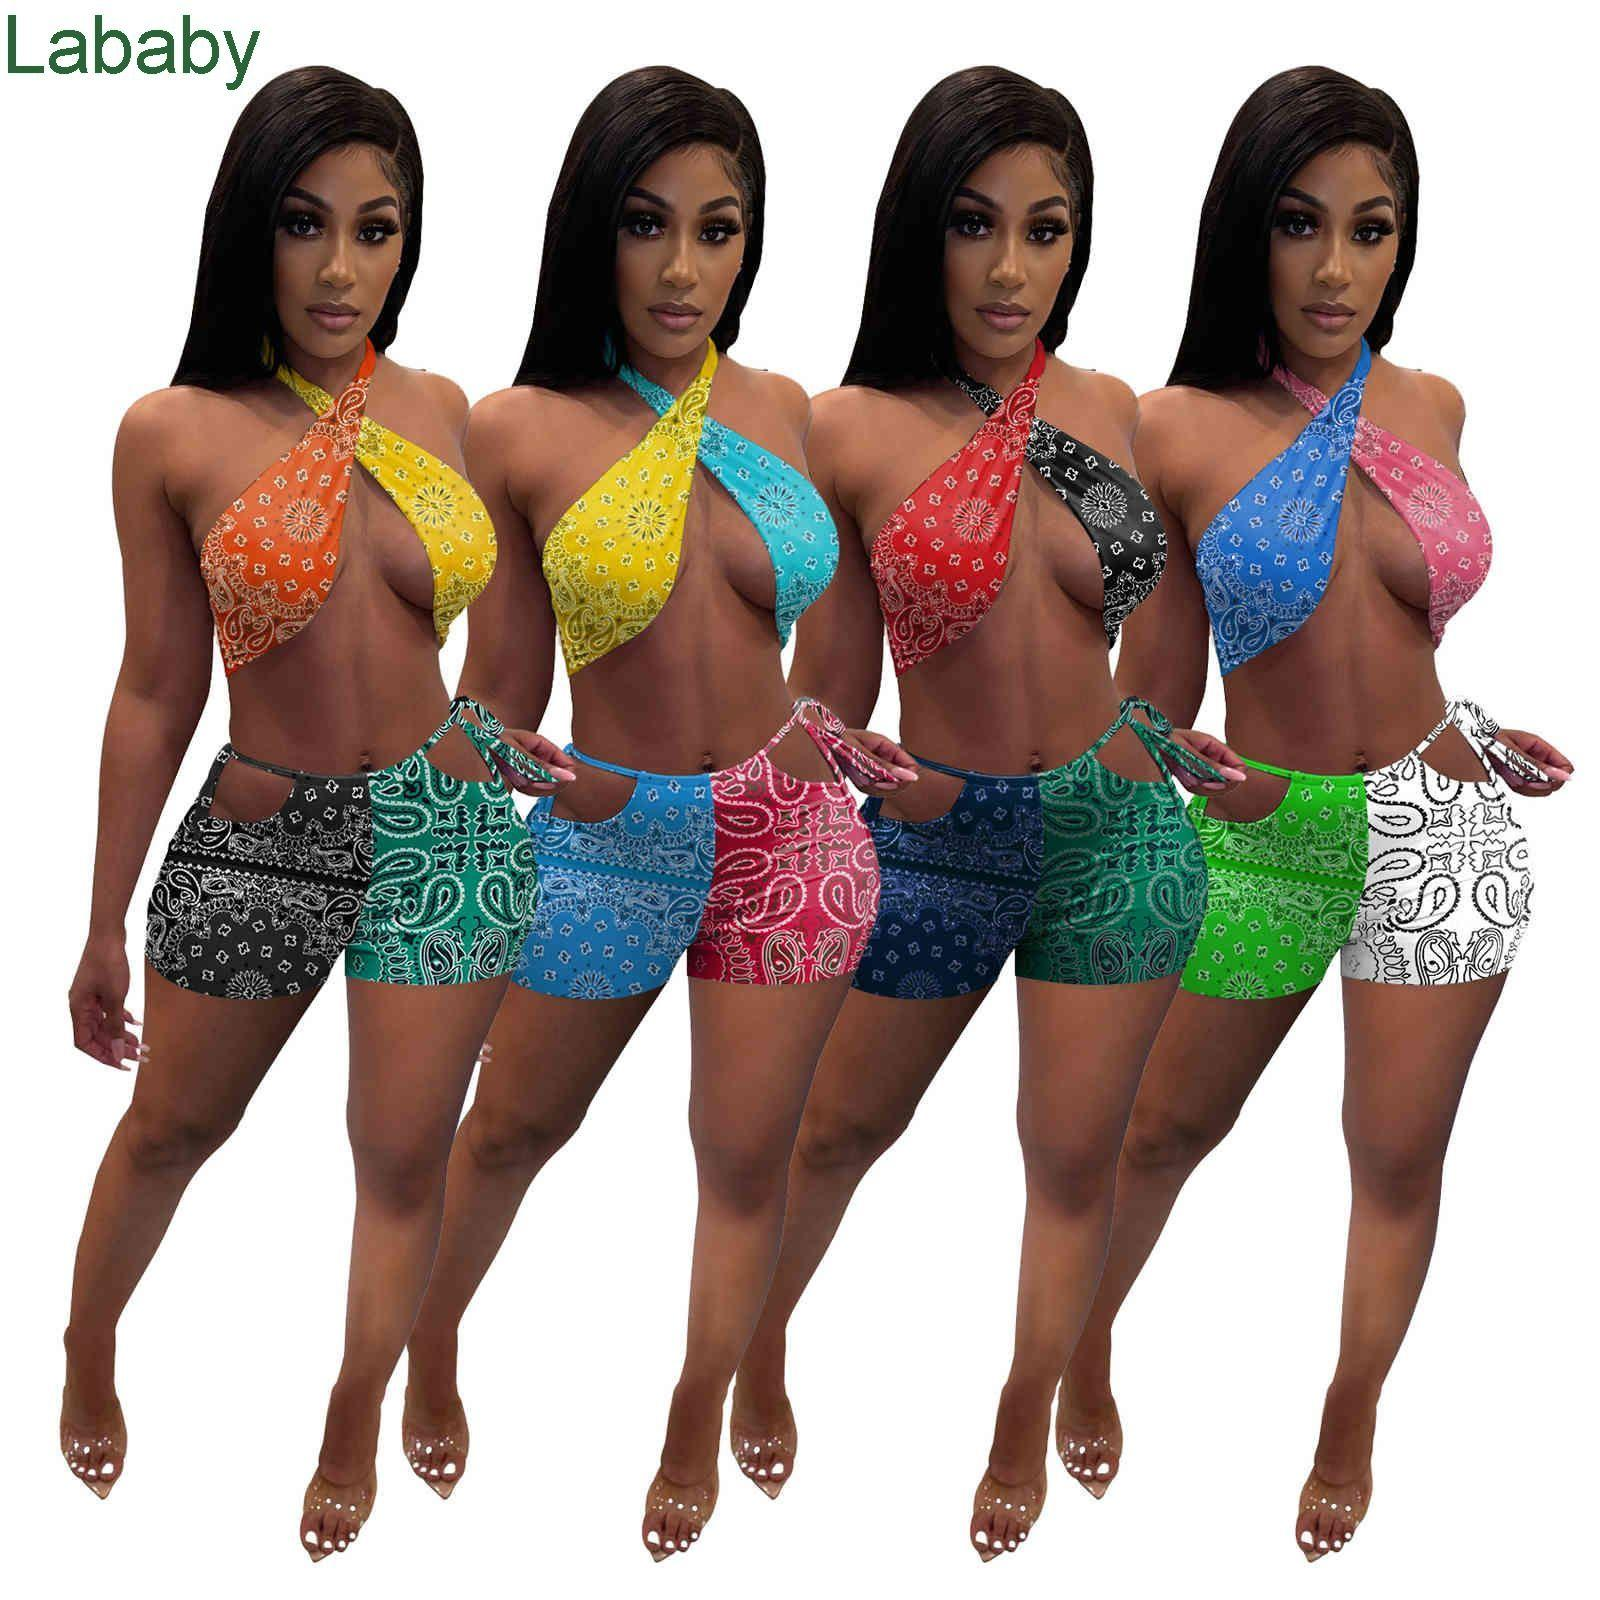 Women Tracksuits Two Piece Set Designer Slim sexy Shorts Outfits Tight Strapless Top Small Bra Shorts Leisure Sports Suit